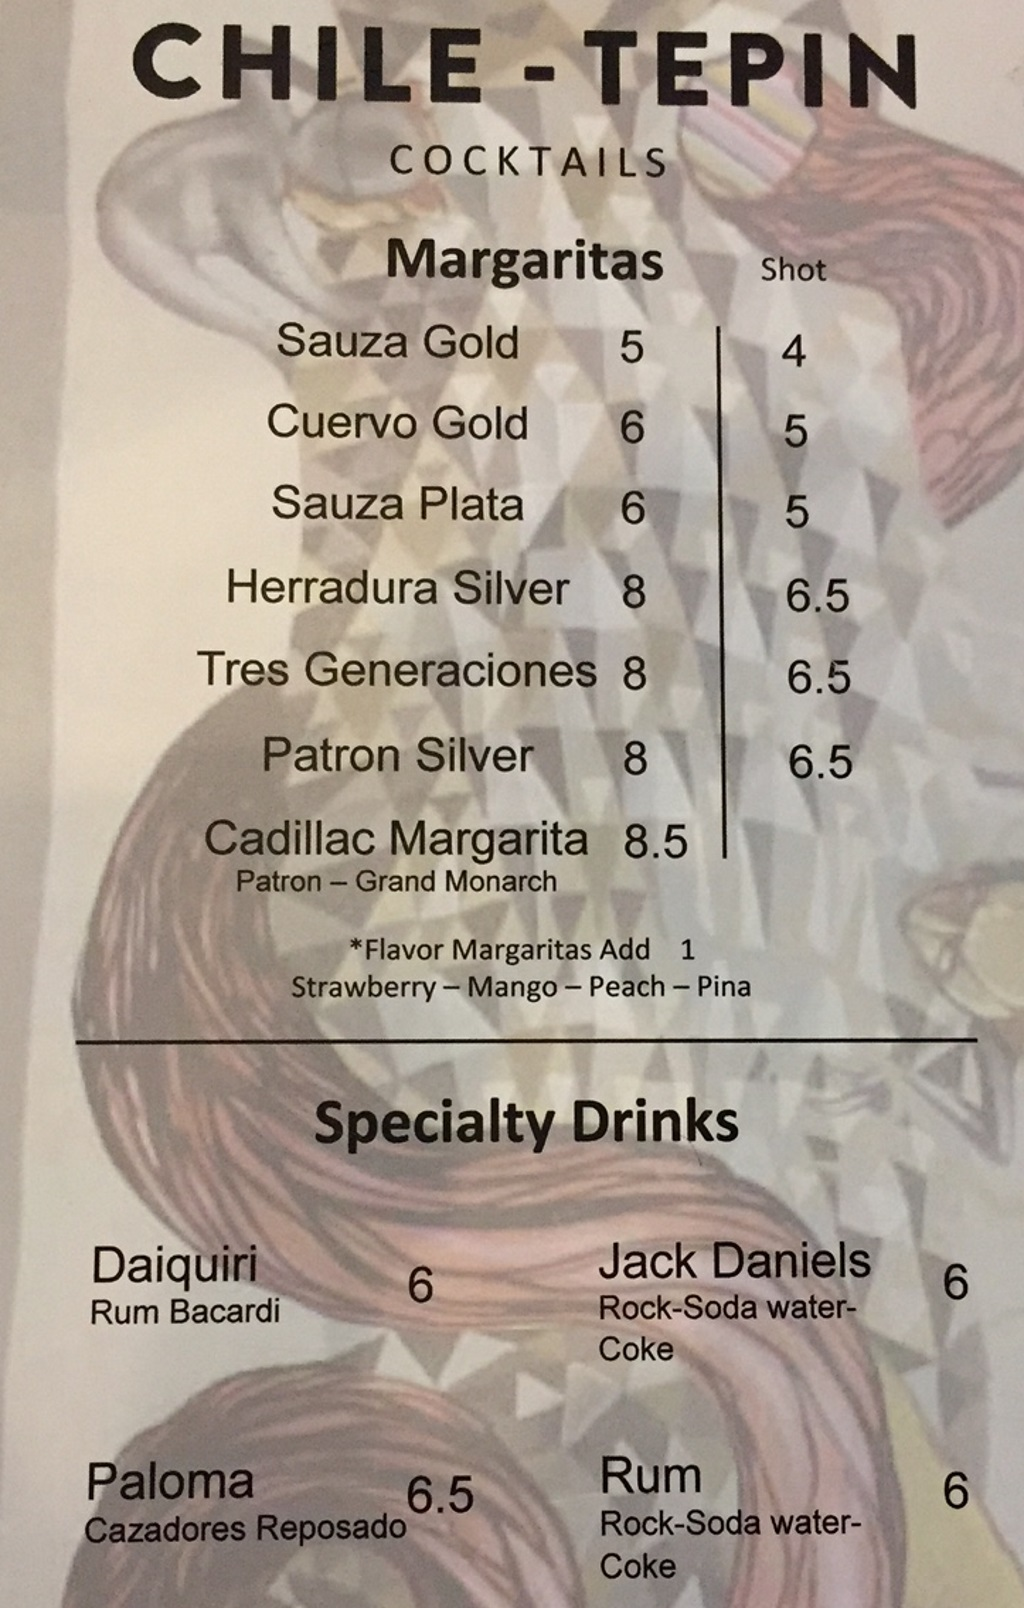 Chile Tepin menu - cocktails and tequila